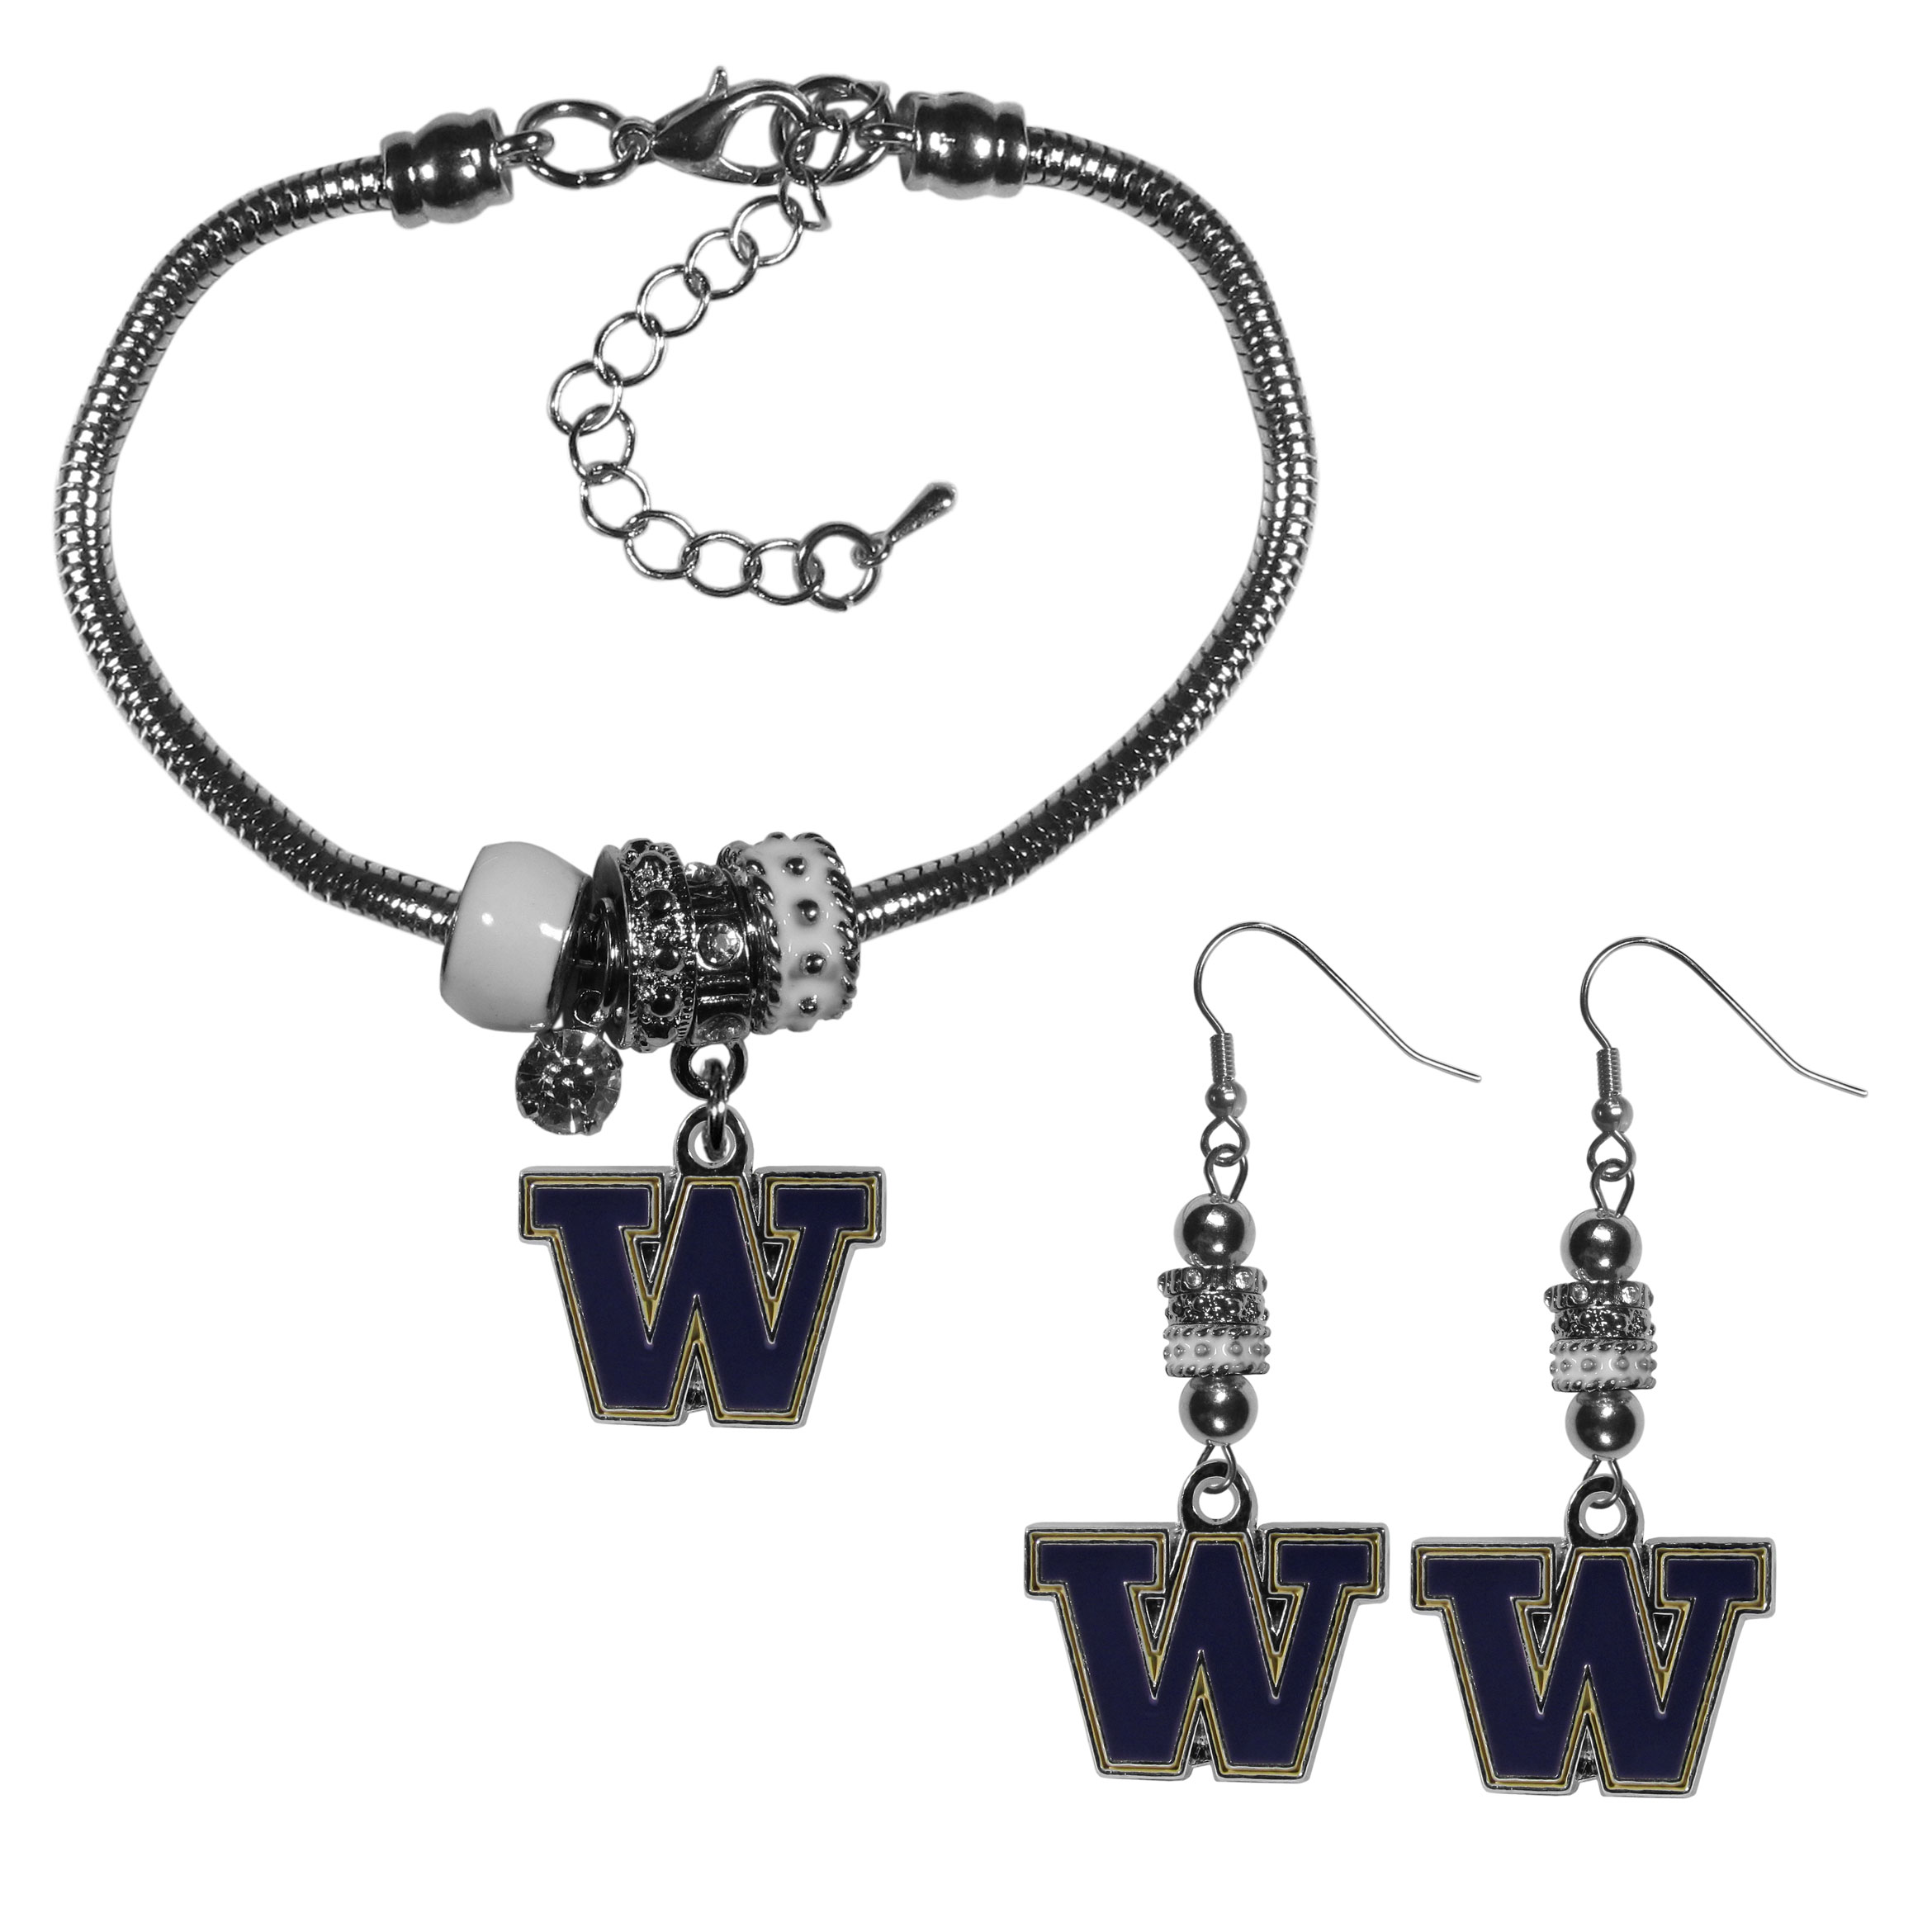 Washington Huskies Euro Bead Earrings and Bracelet Set - We combine the popular Euro bead style with your love of the Washington Huskies with this beautiful jewelry set that includes earrings and a matching bracelet. The stylish earrings feature hypoallergenic, nickel free fishhook posts and 3 team colored Euro beads and a metal team charm. The matching snake chain bracelet is 7.5 inches long with a 2 inch extender and 4 Euro beads with a rhinestone charm and team charm.